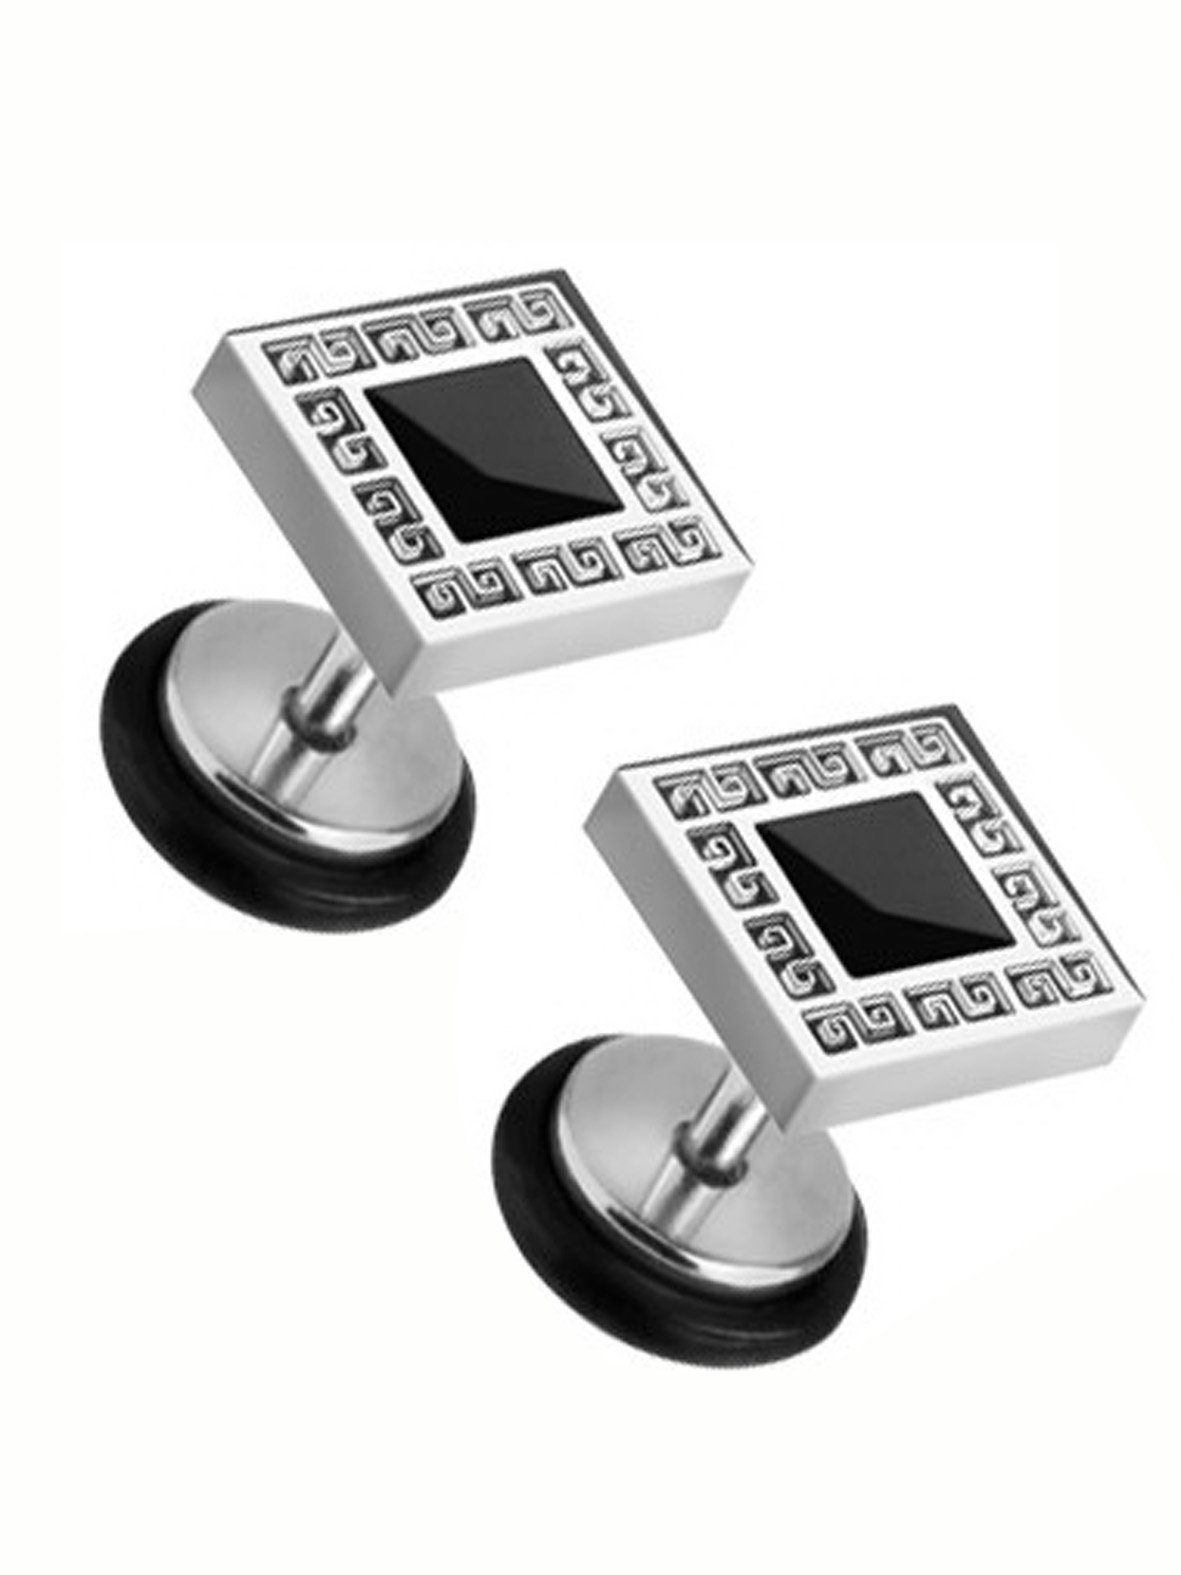 Silver Tone Designer Fashion Barbell Ear Plug Stainless Steel Barbell (316L Surgical Steel) Square Earring Body Piercing (1pc)